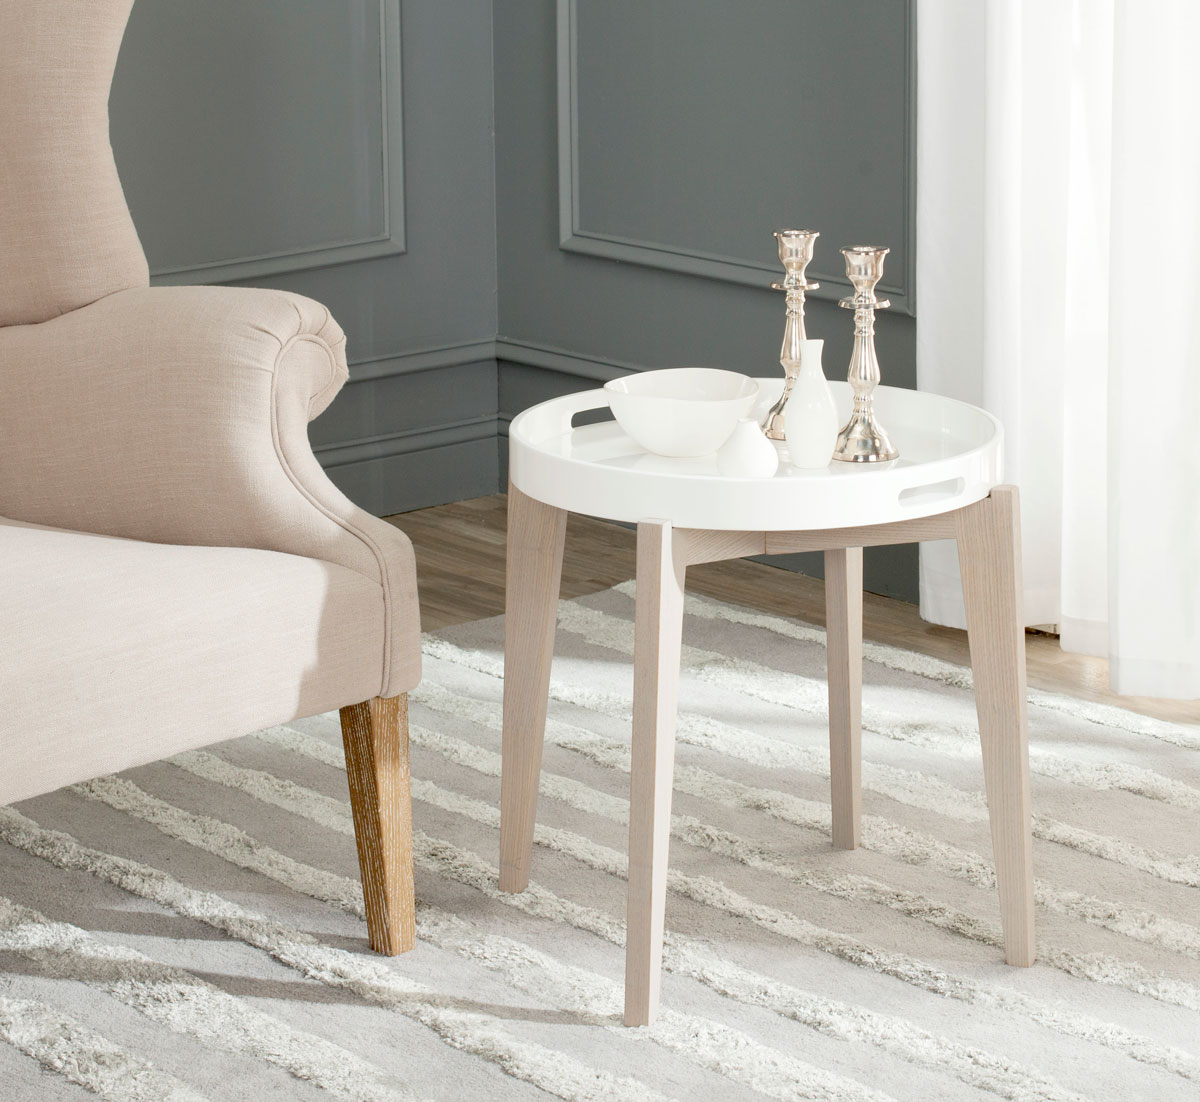 A Silent Butler For Your Home, The Ben Tray Table Is As Good Looking As It  Is Hard Working. A Removable White Lacquer Wood Tray Sits Atop A  Grey Washed Base ...